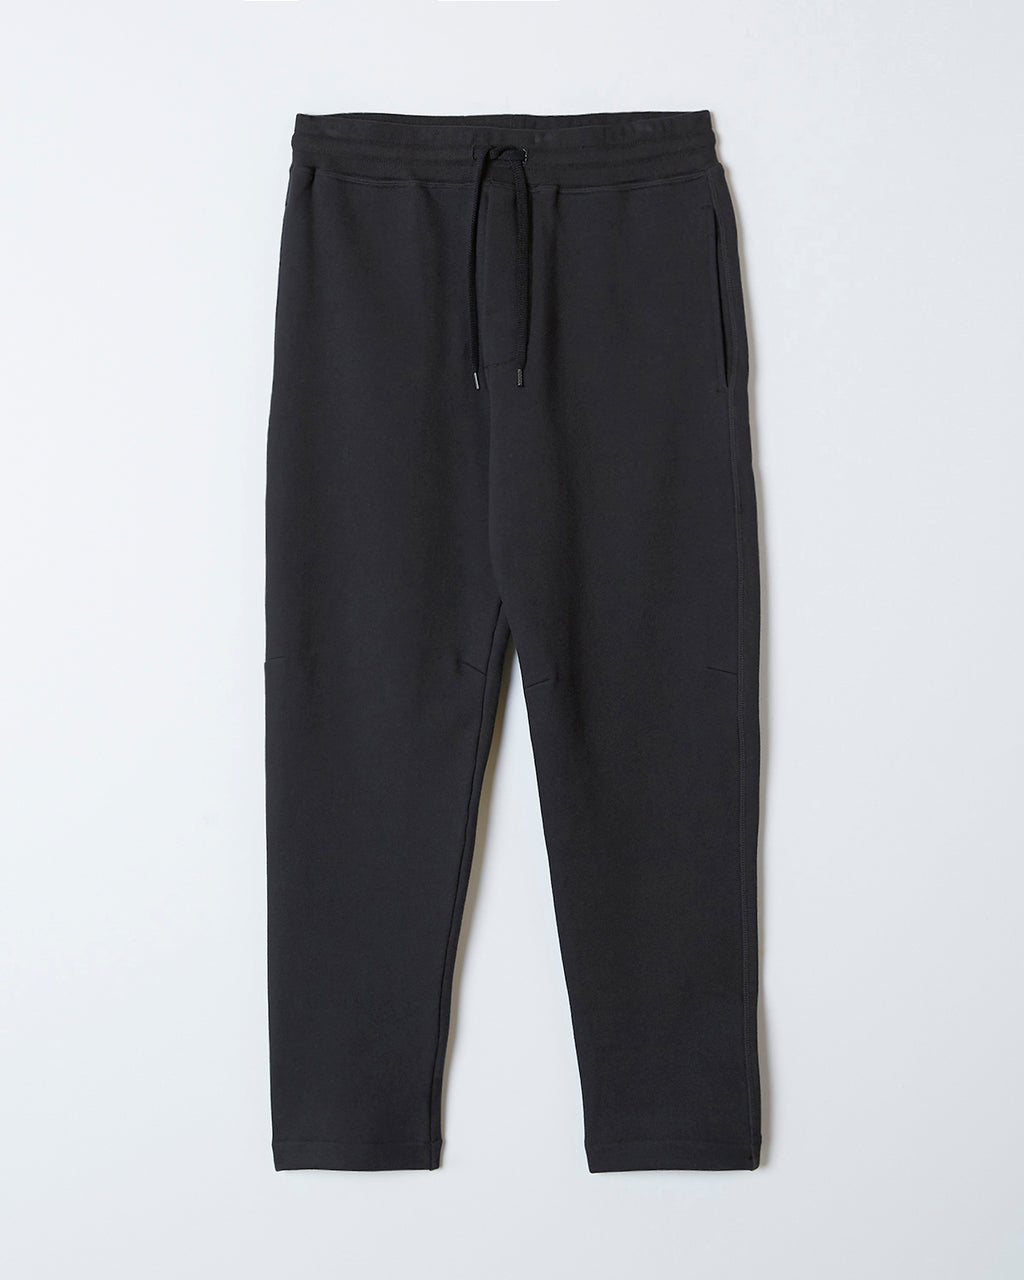 The Penmar Pant In Overdye Black